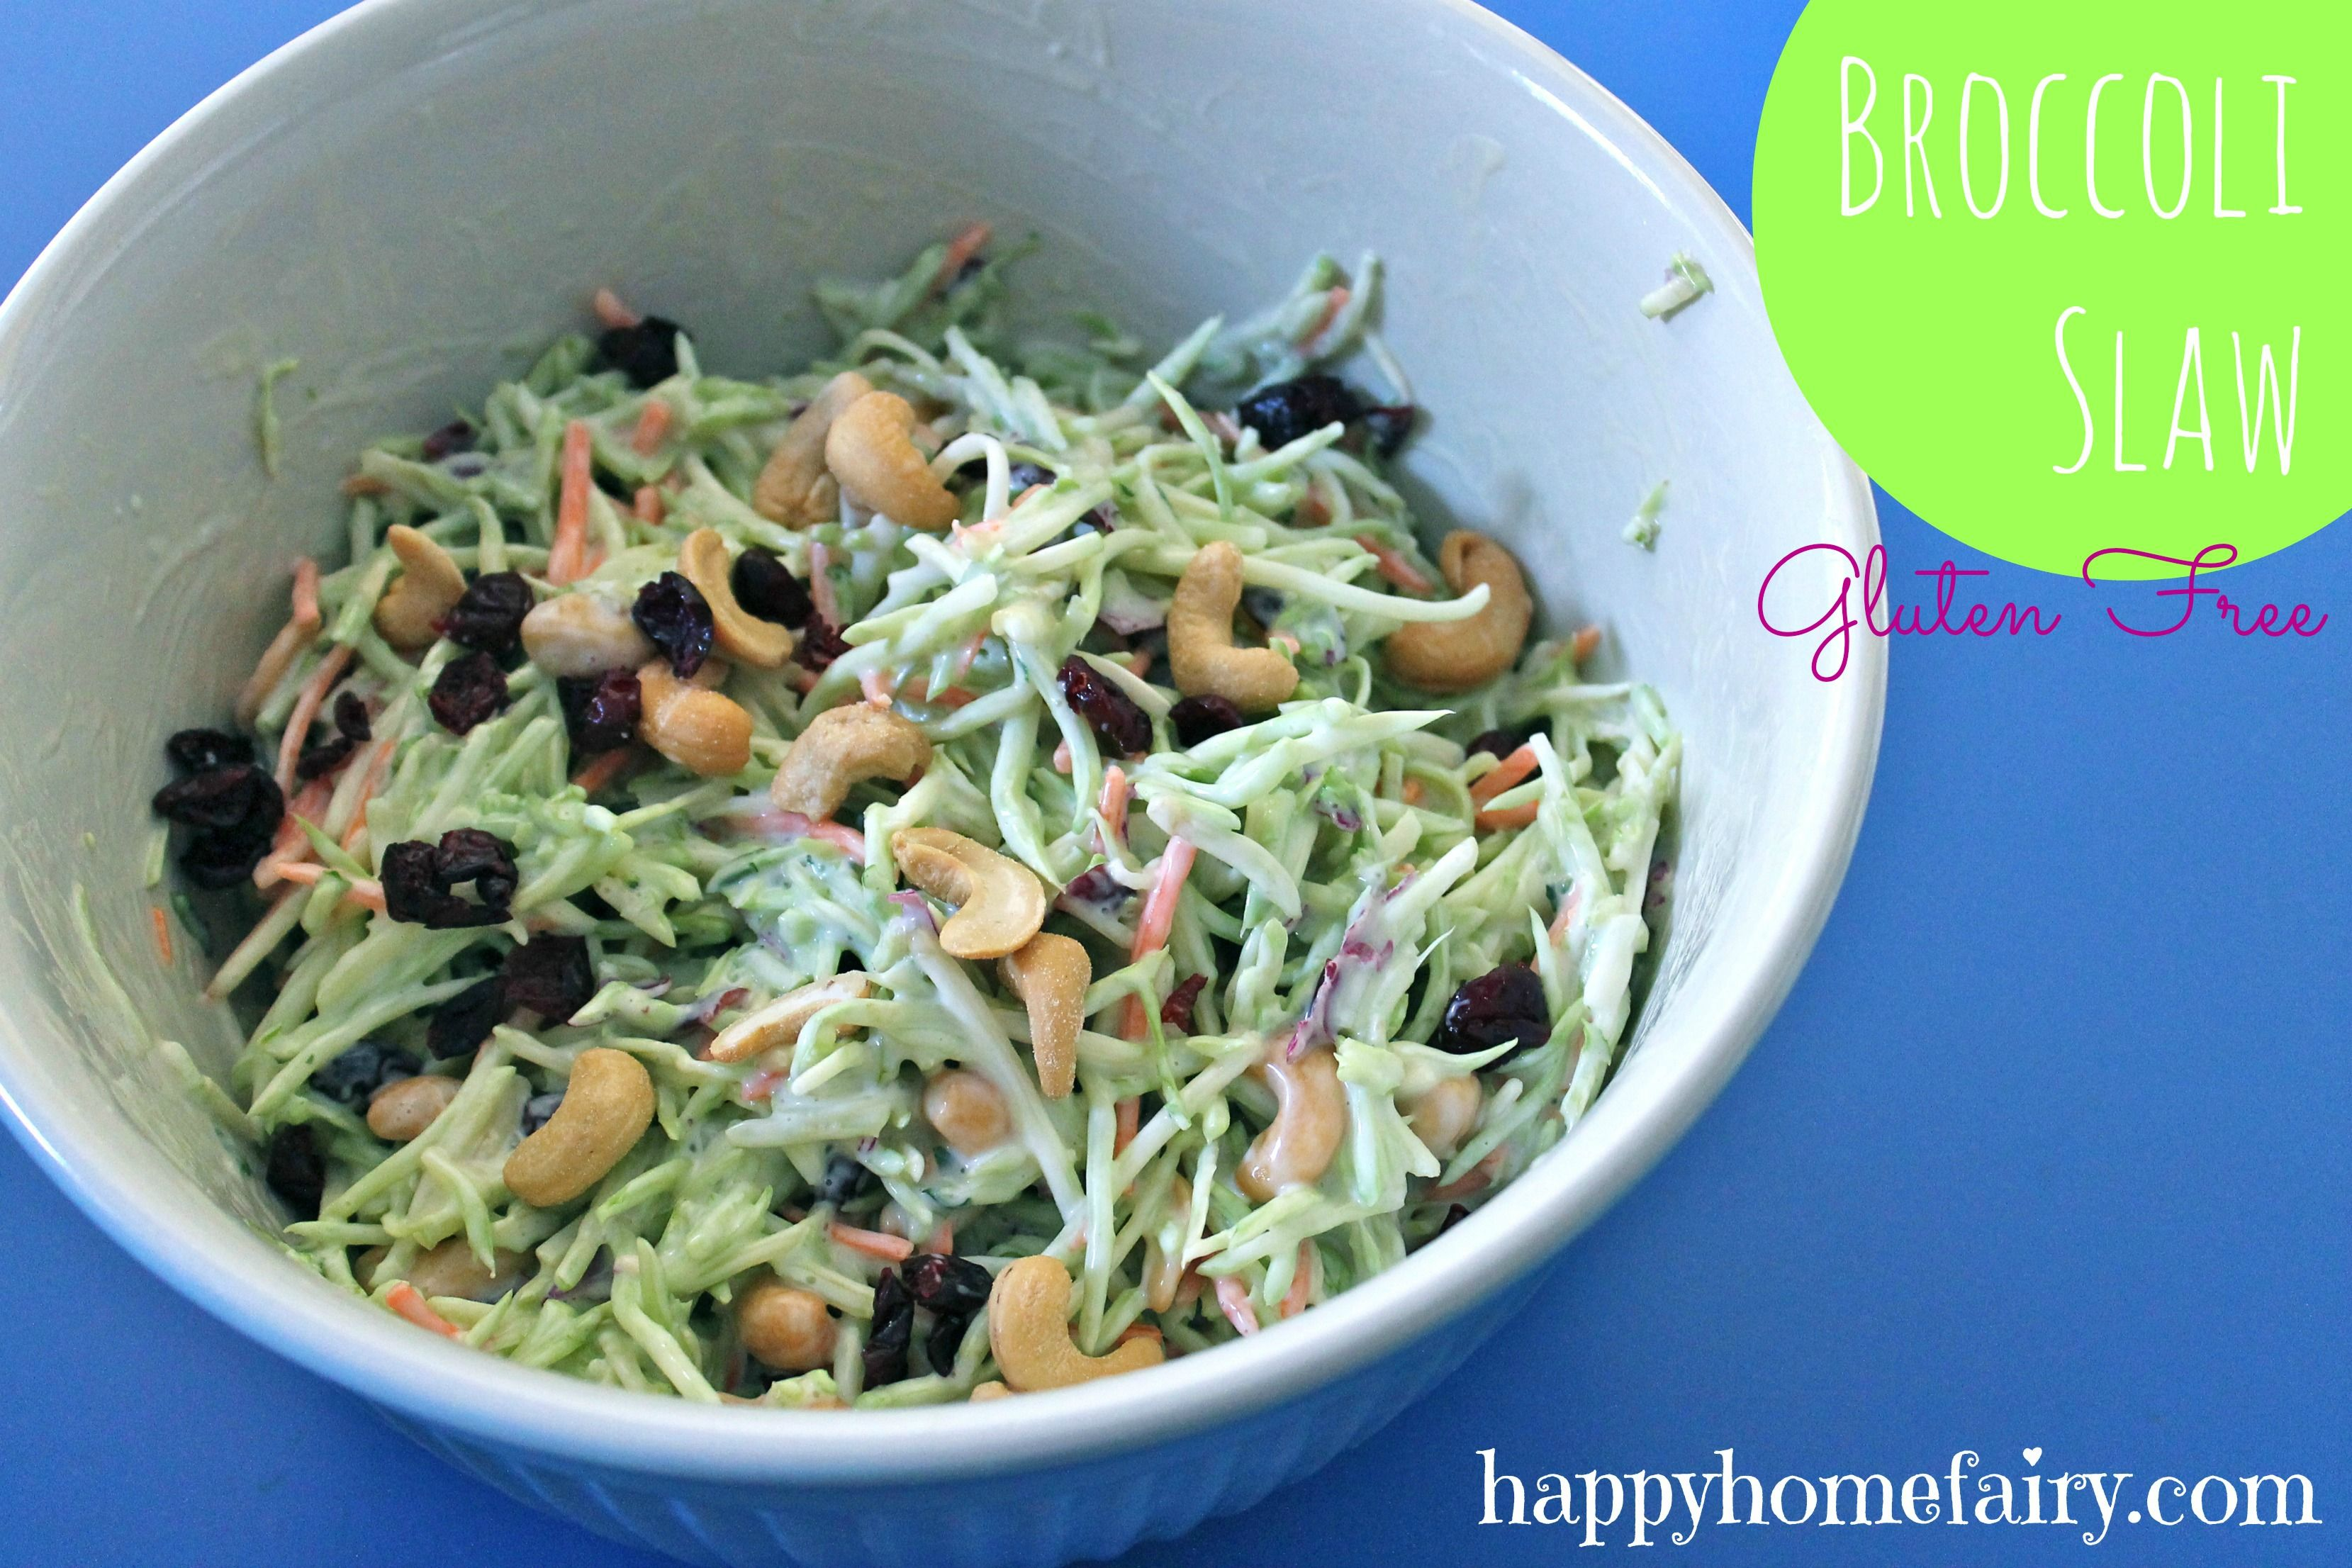 Recipe - Broccoli Slaw